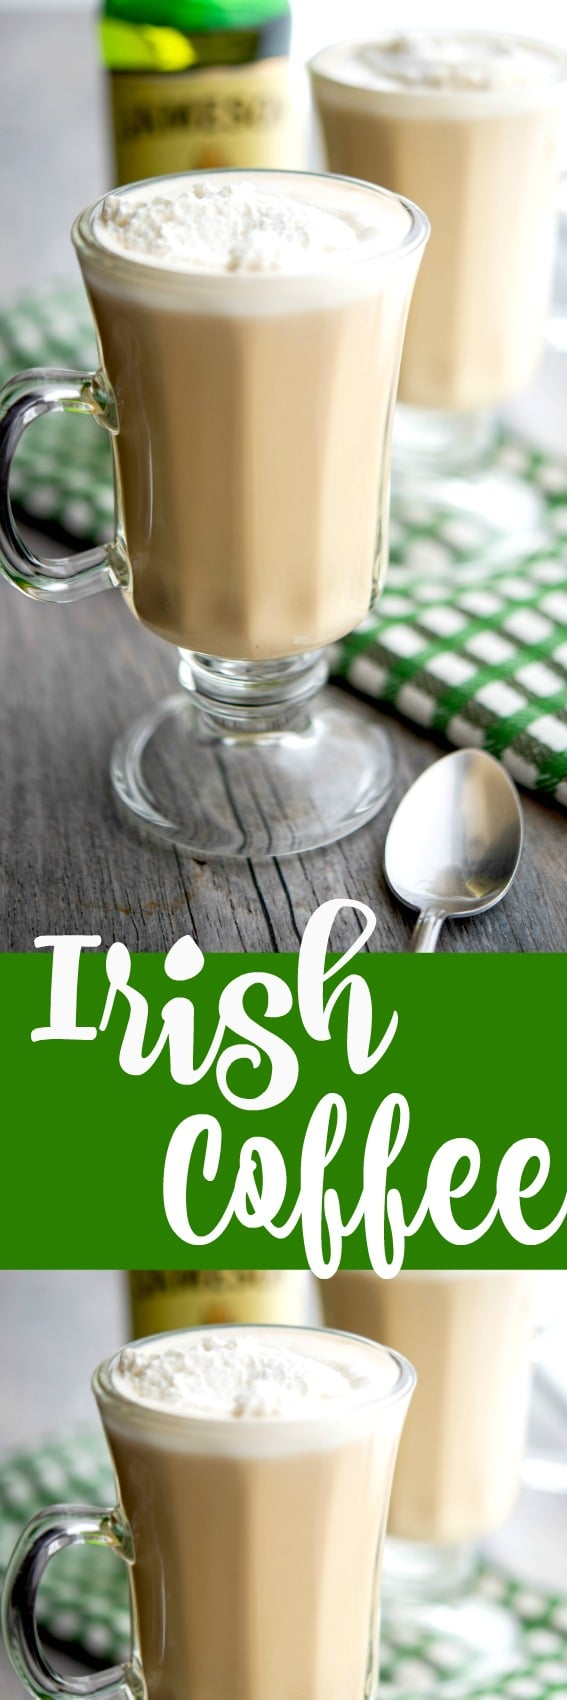 Warm your soul with this recipe for homemadeIrish Coffee made with freshly brewed coffee and Irish whiskey; then topped with a dollop of whipped cream. #coffee #irish #homemade #whiskey #stpatricksday